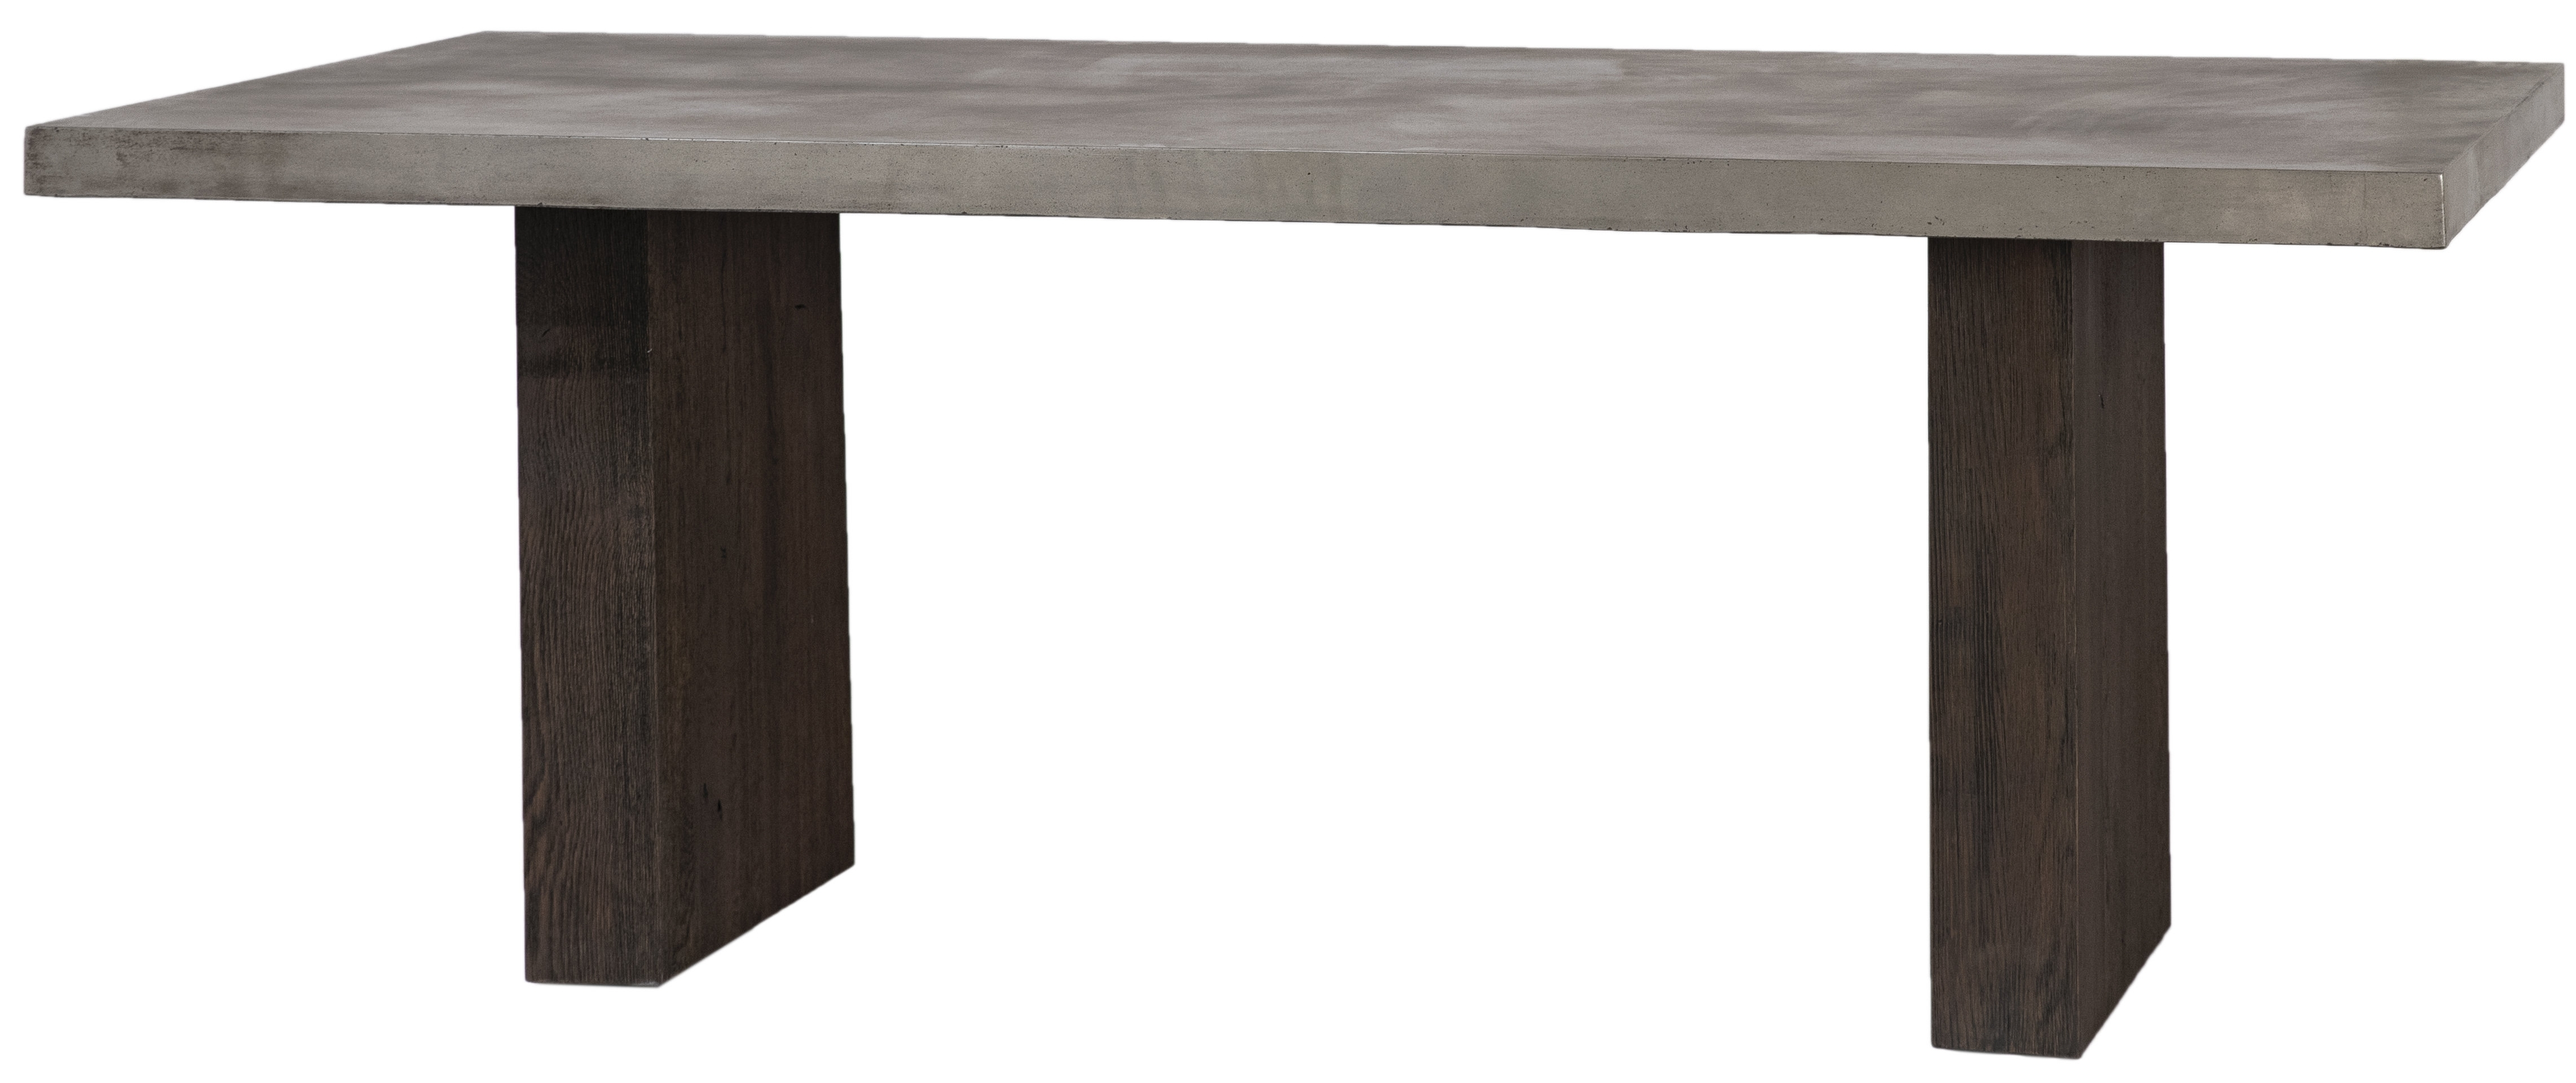 Famous Norwood 6 Piece Rectangle Extension Dining Sets Inside Tipton & Tate Norwood Dining Table (View 7 of 25)